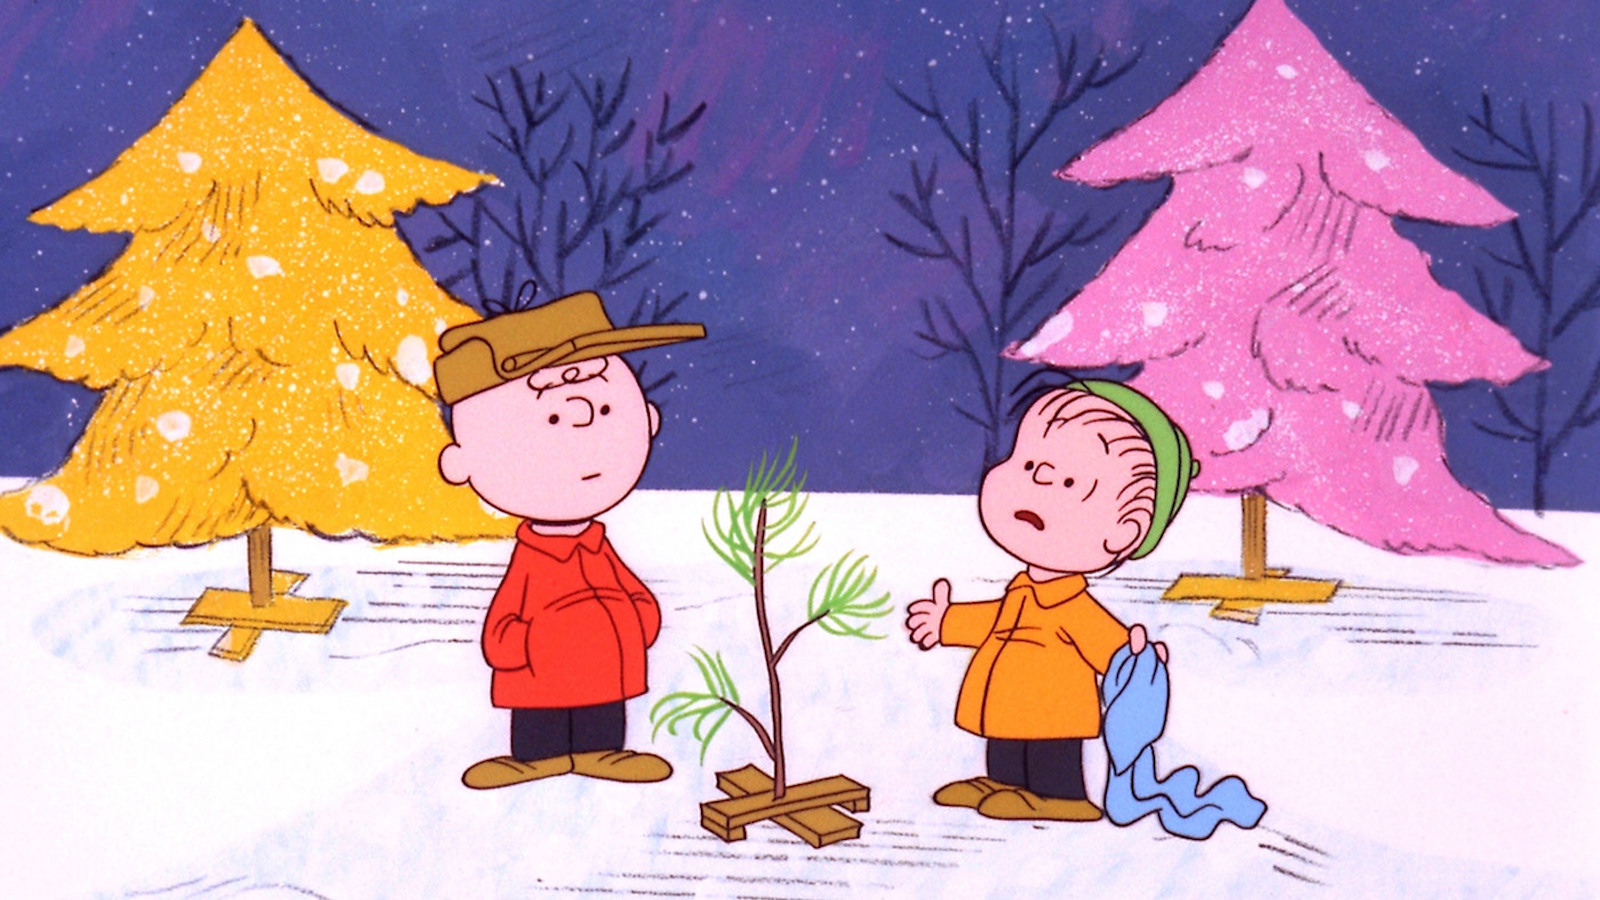 Charlie Brown Christmas Racist.A Charlie Brown Christmas Is Actually A Secret Metaphor For